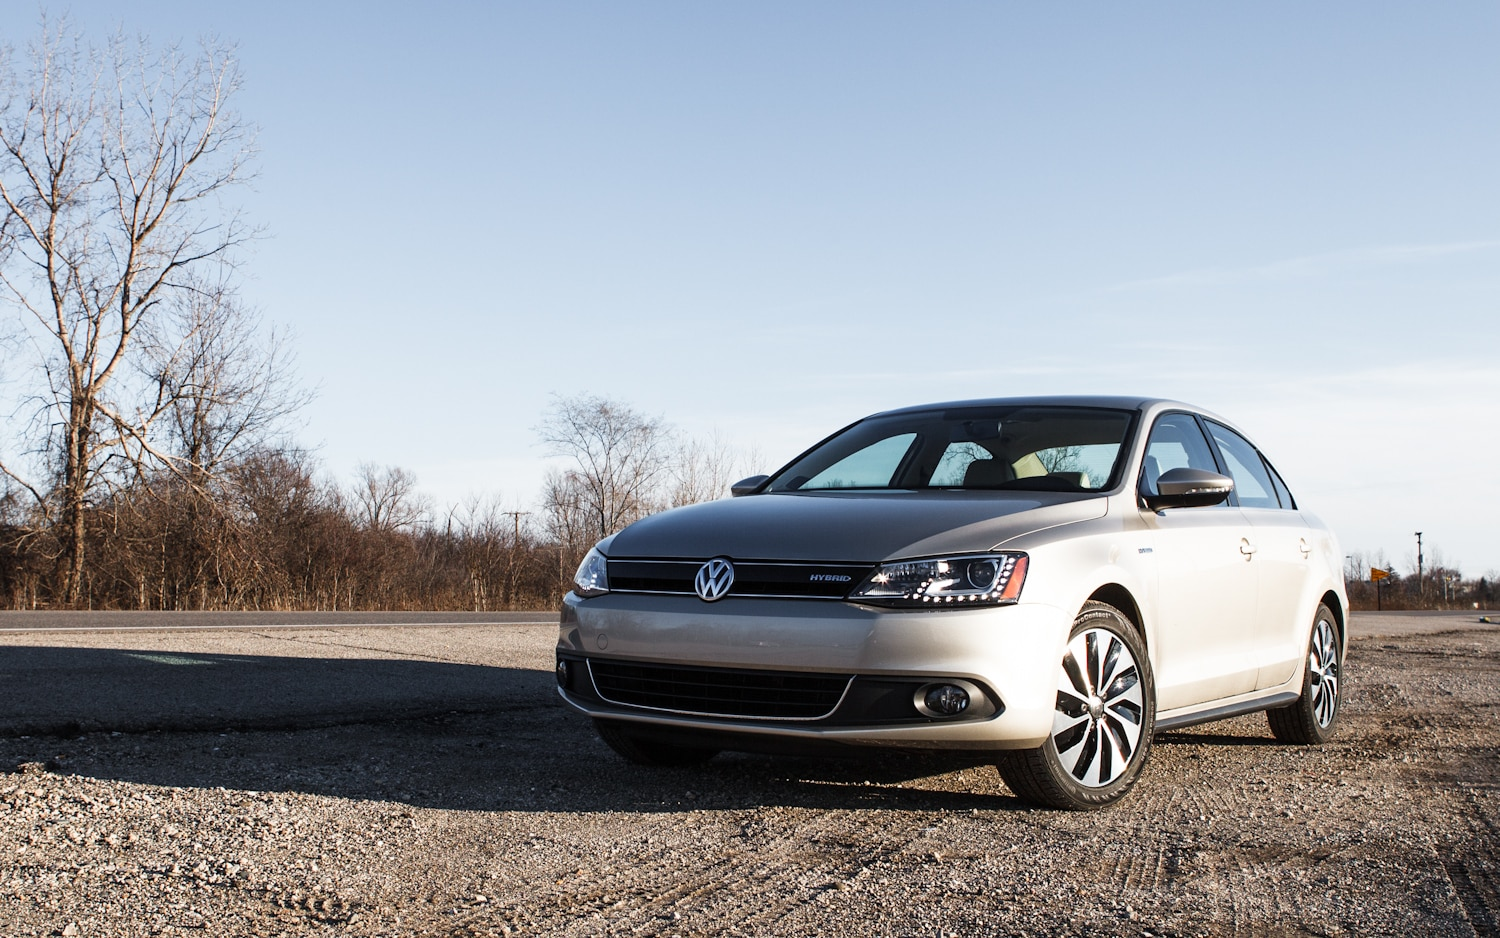 Phil Long Hyundai >> 2013 Volkswagen Jetta Hybrid SEL Premium - Editors' Notebook - Automobile Magazine